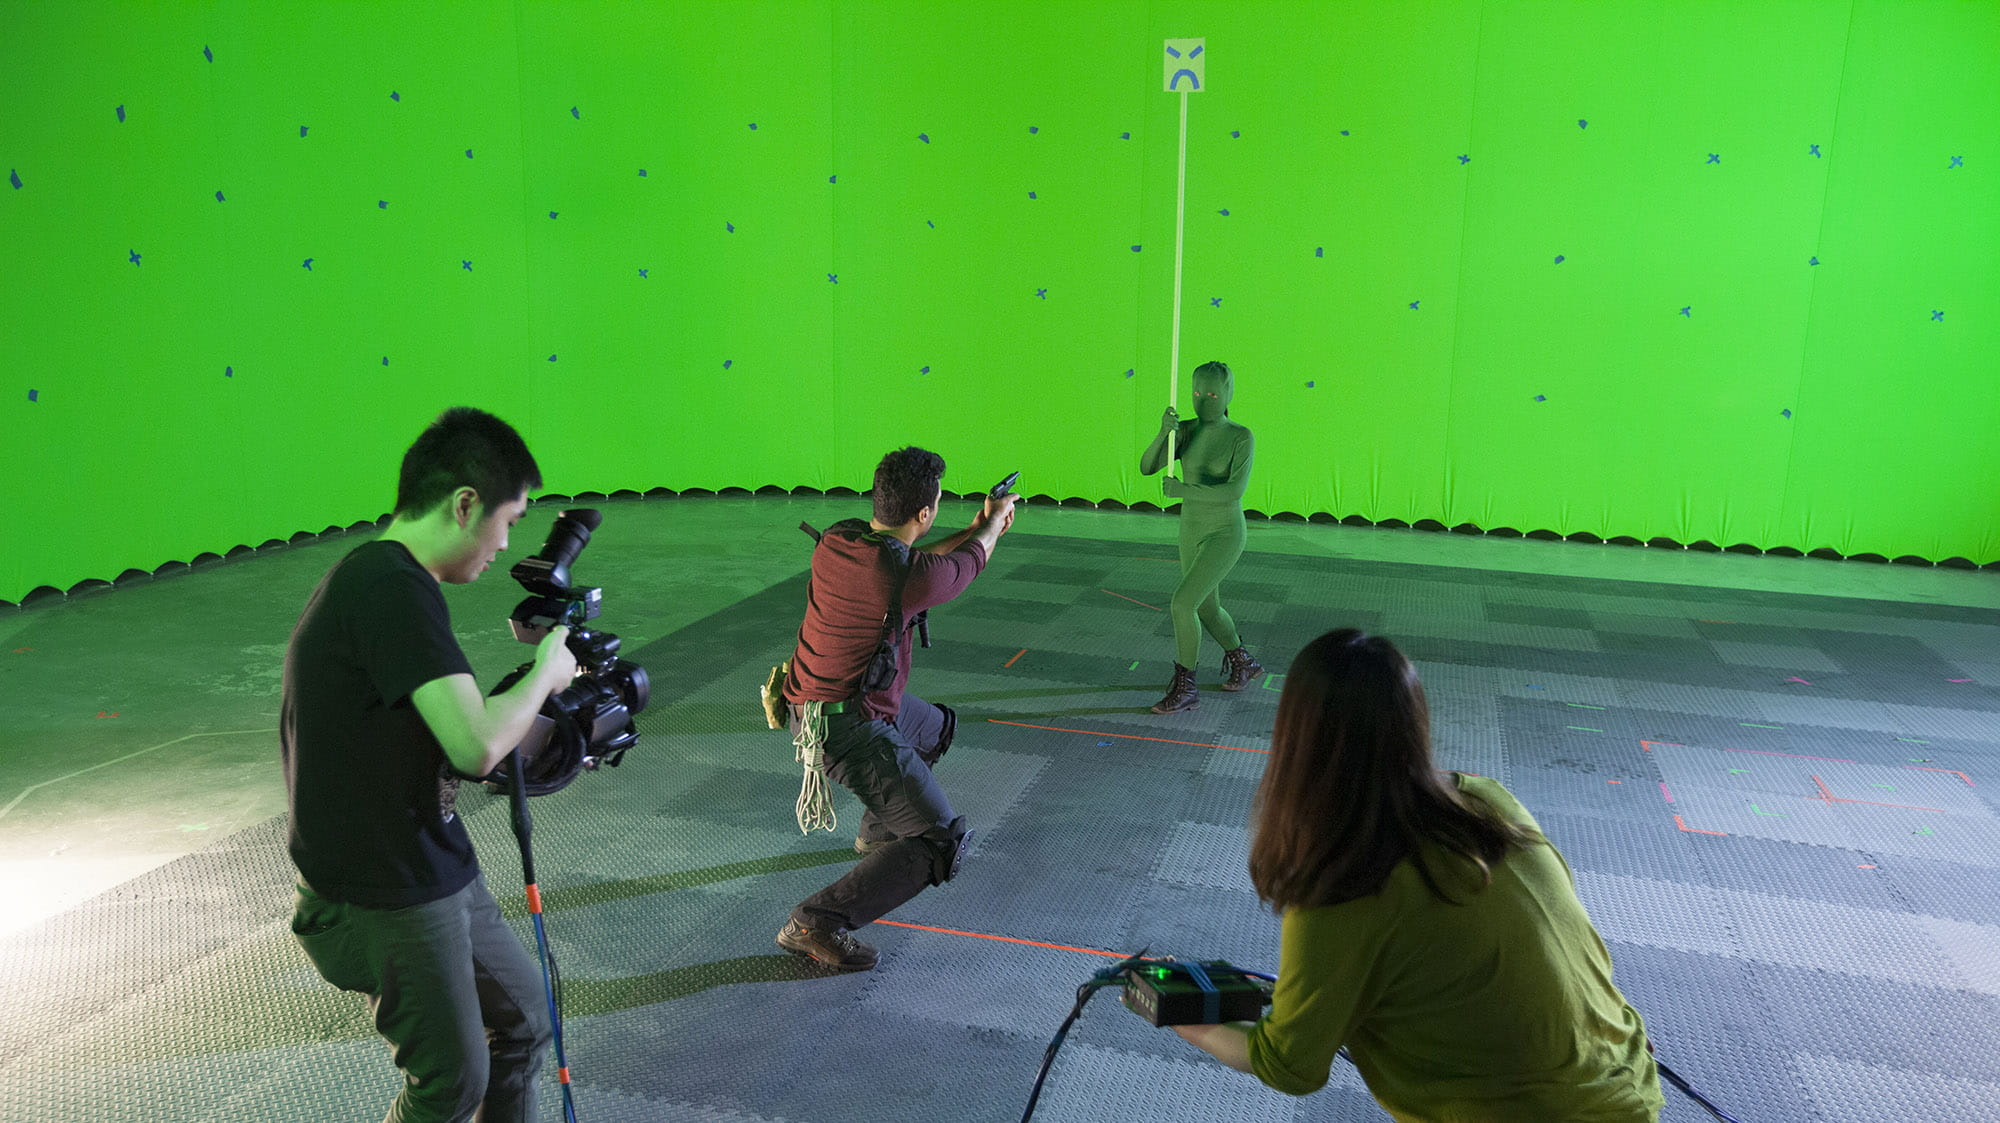 Students filming two people in a large room with green walls